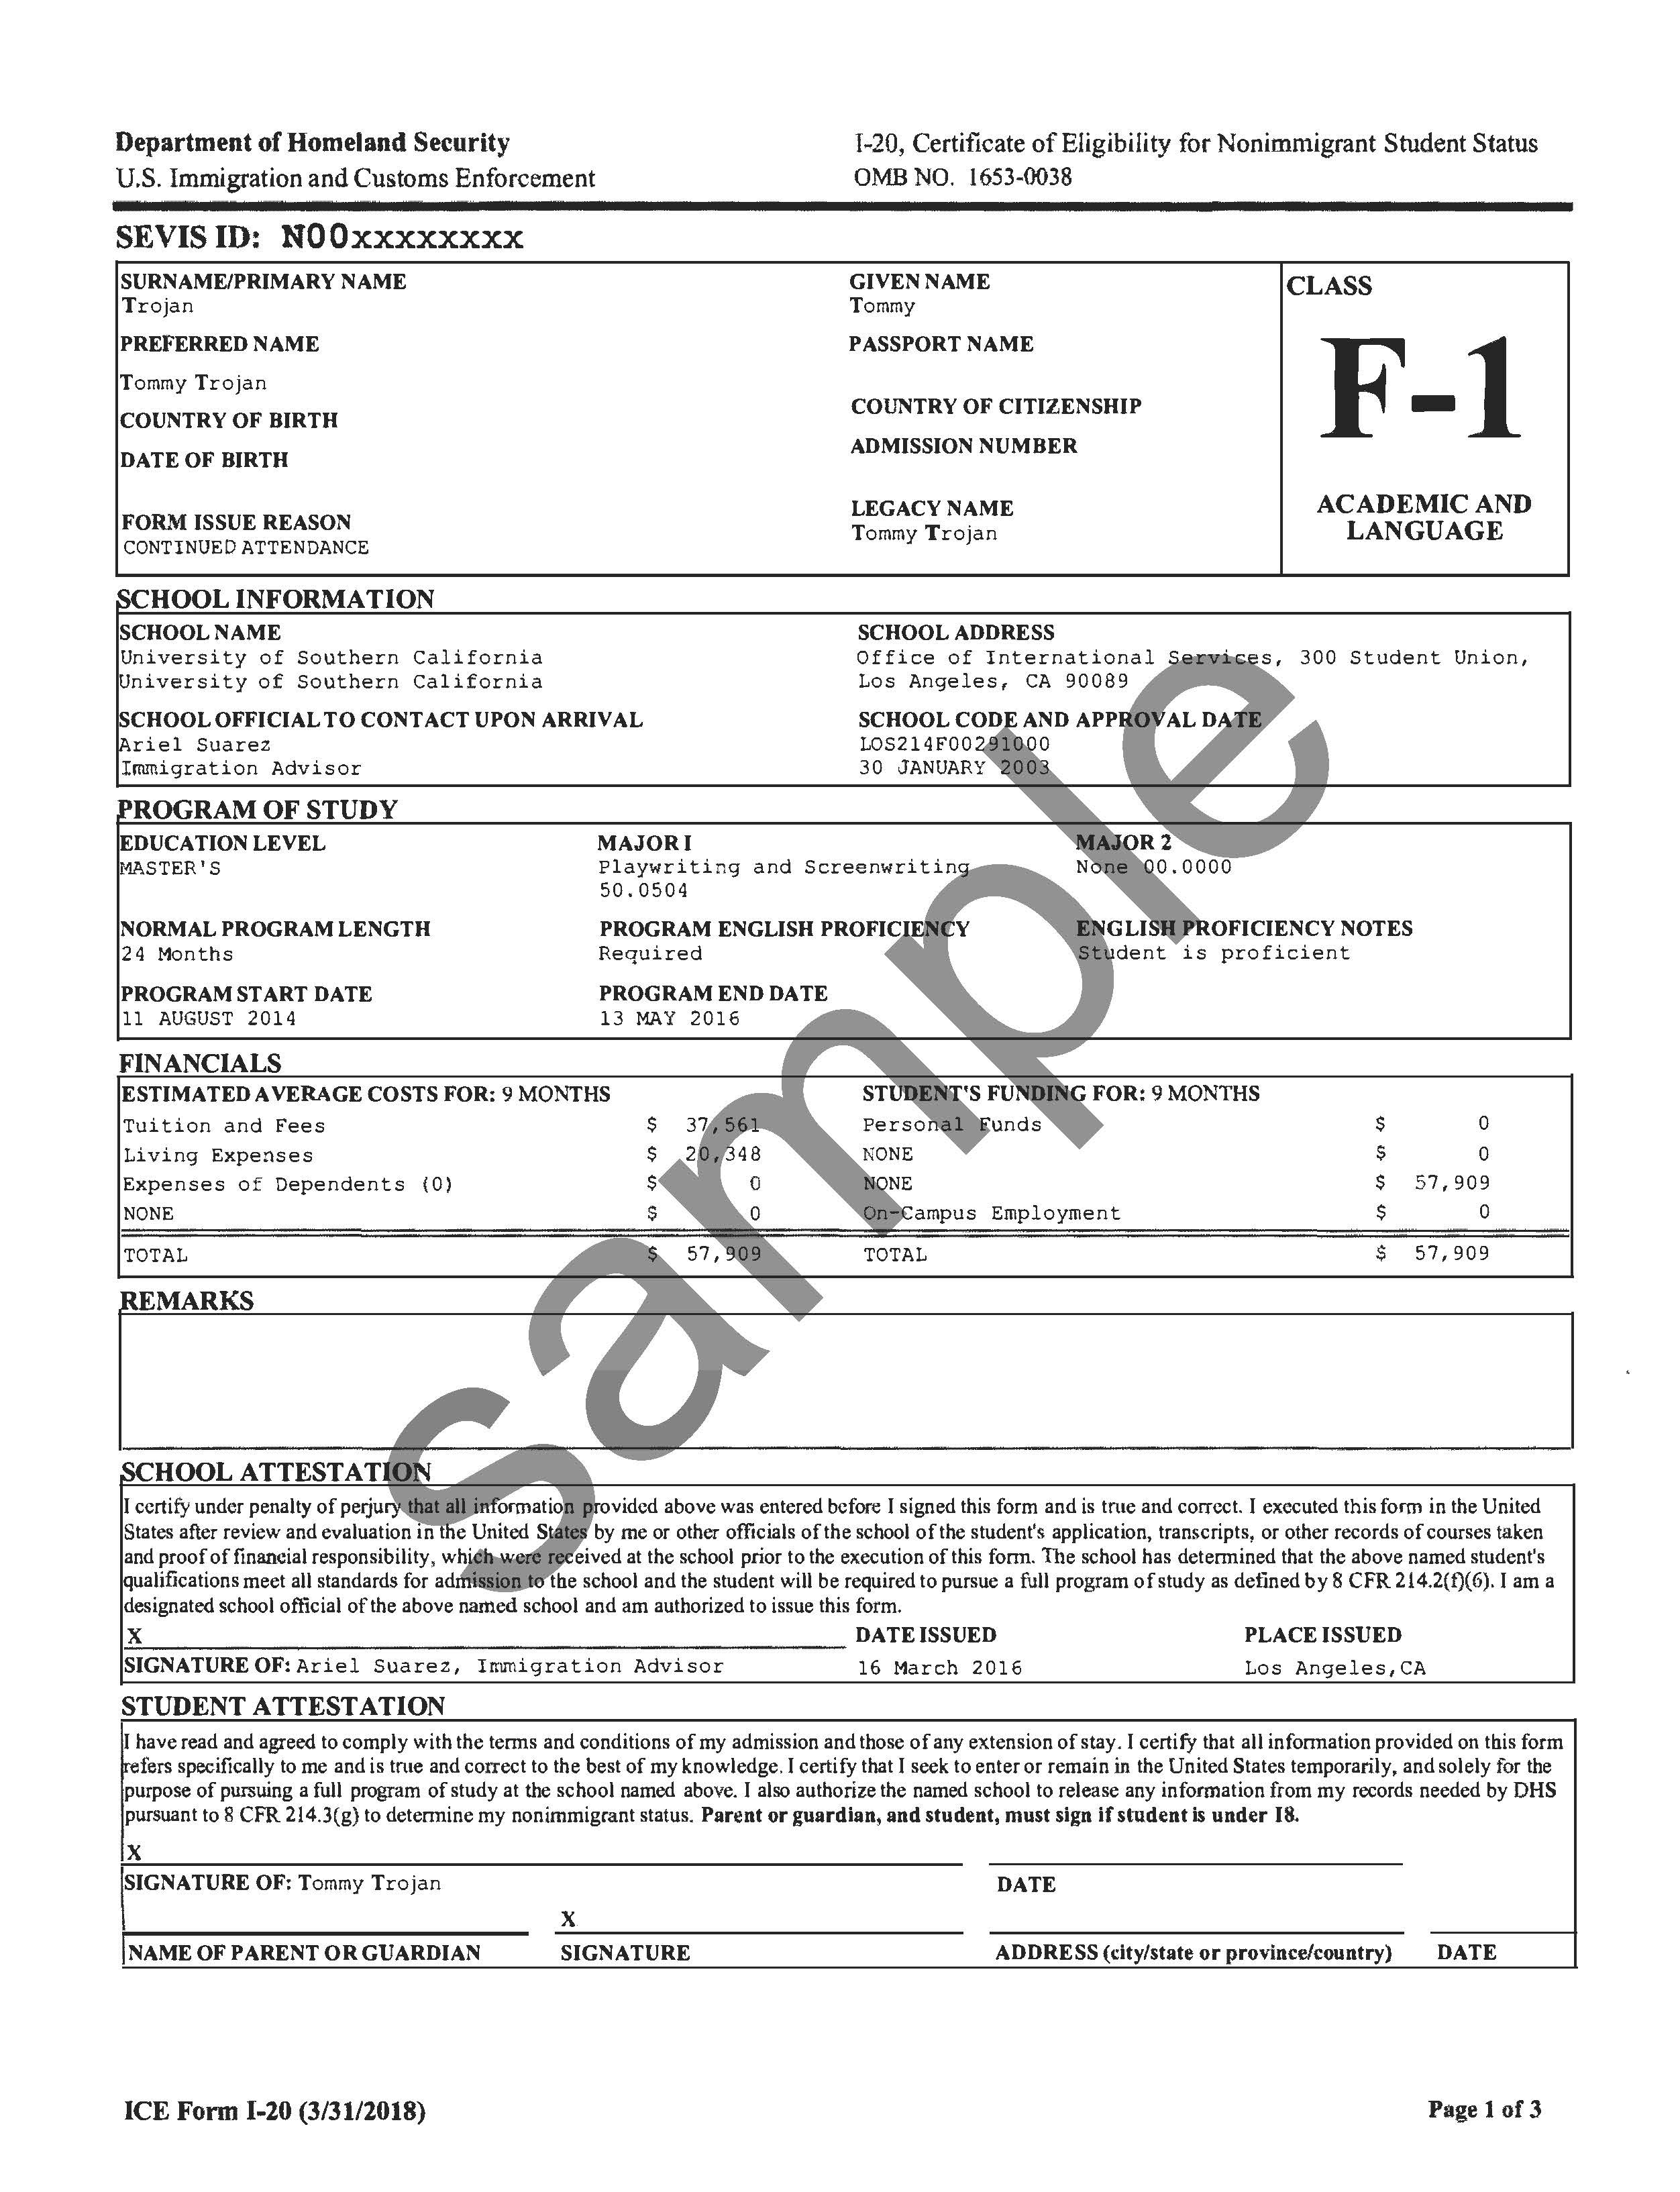 A Redesigned Form I-20 Available at OIS | Office of International ...